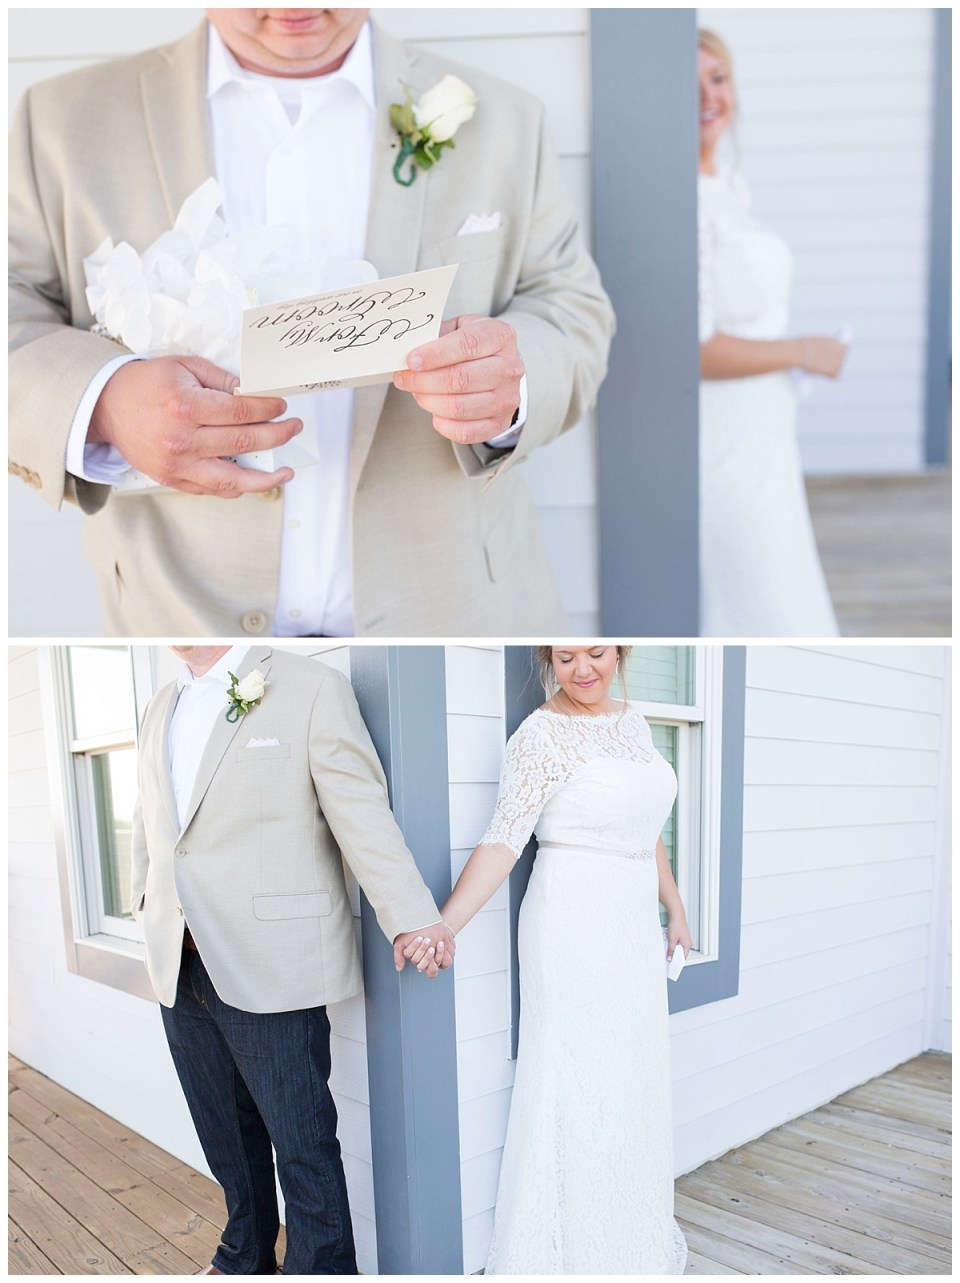 Jamie & John Harris Wedding at Oak Island, NC